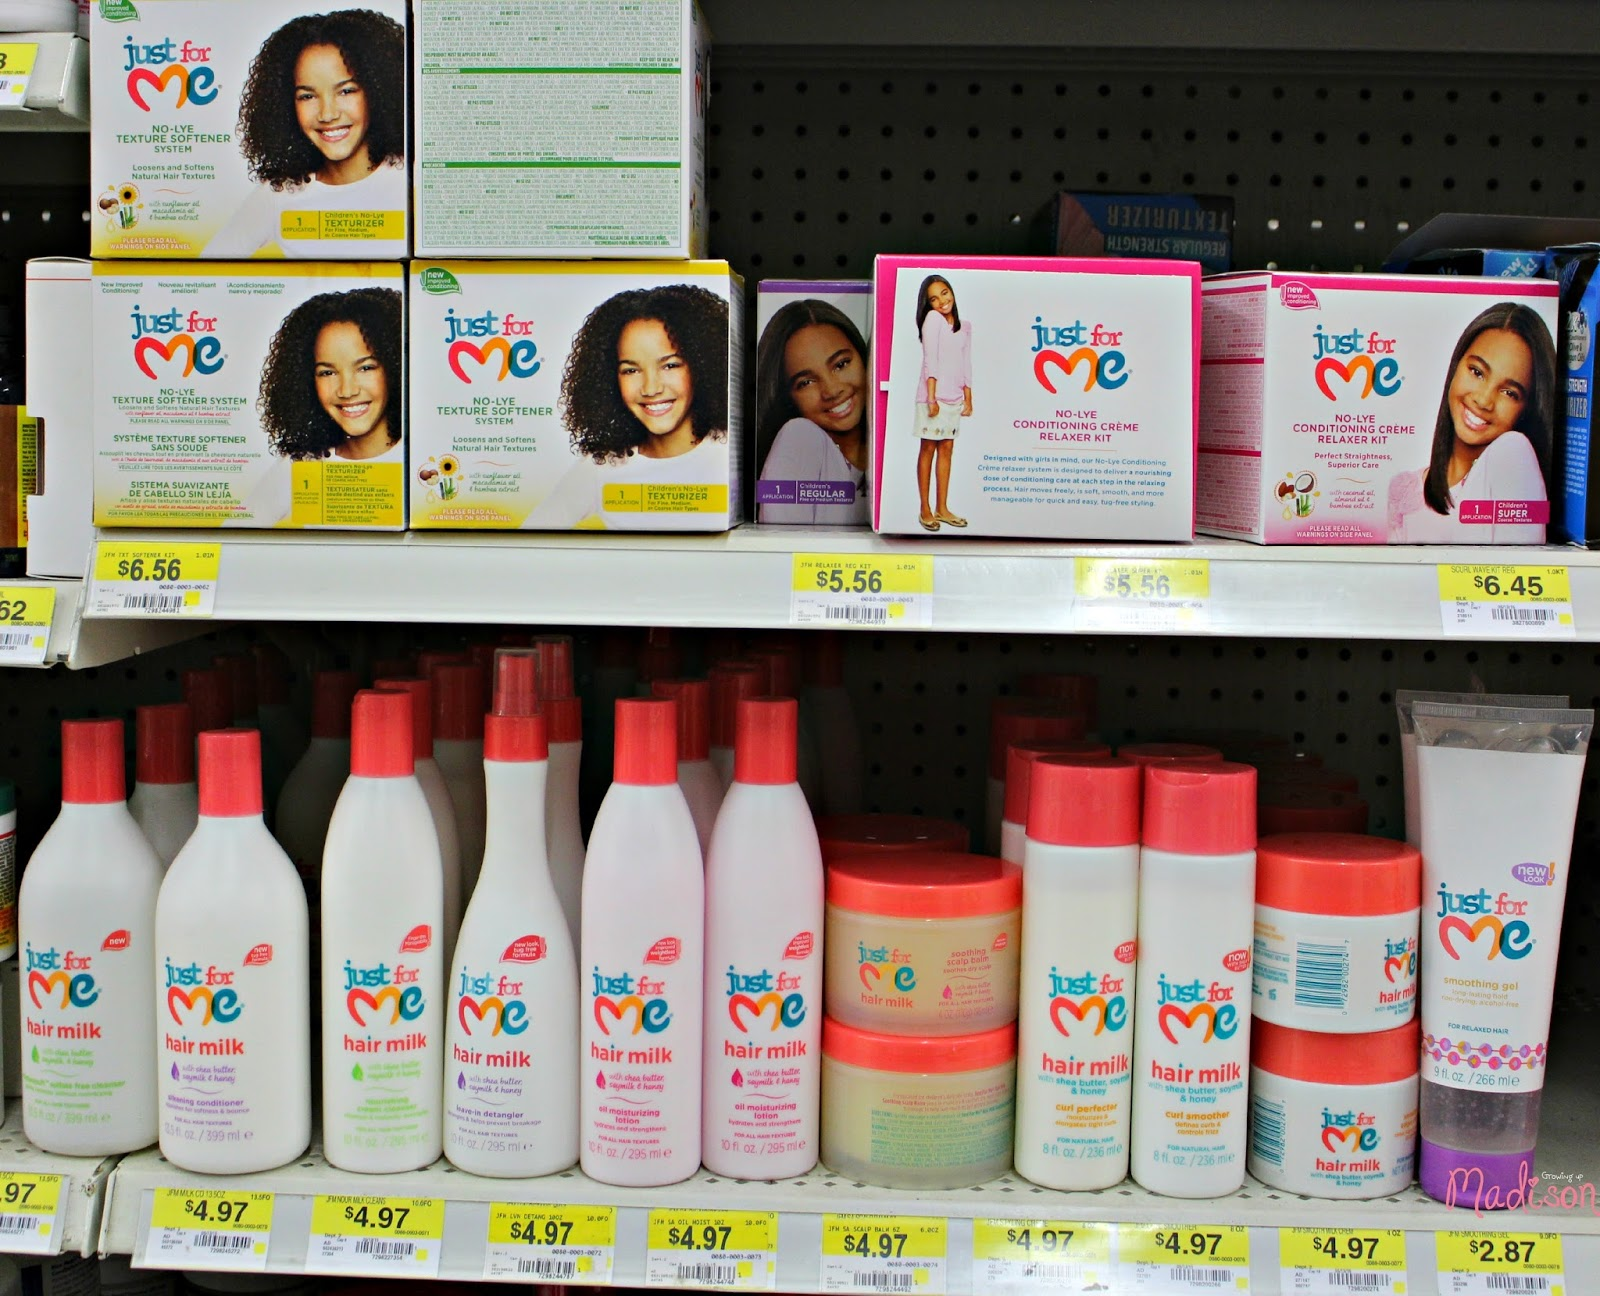 A qualifying purchase includes products from the following categories: cosmetics, nails, skin care, hair care, fragrances, beauty accessories and bath products. Excludes prescriptions, baby hair care, baby skin care and men's grooming products.